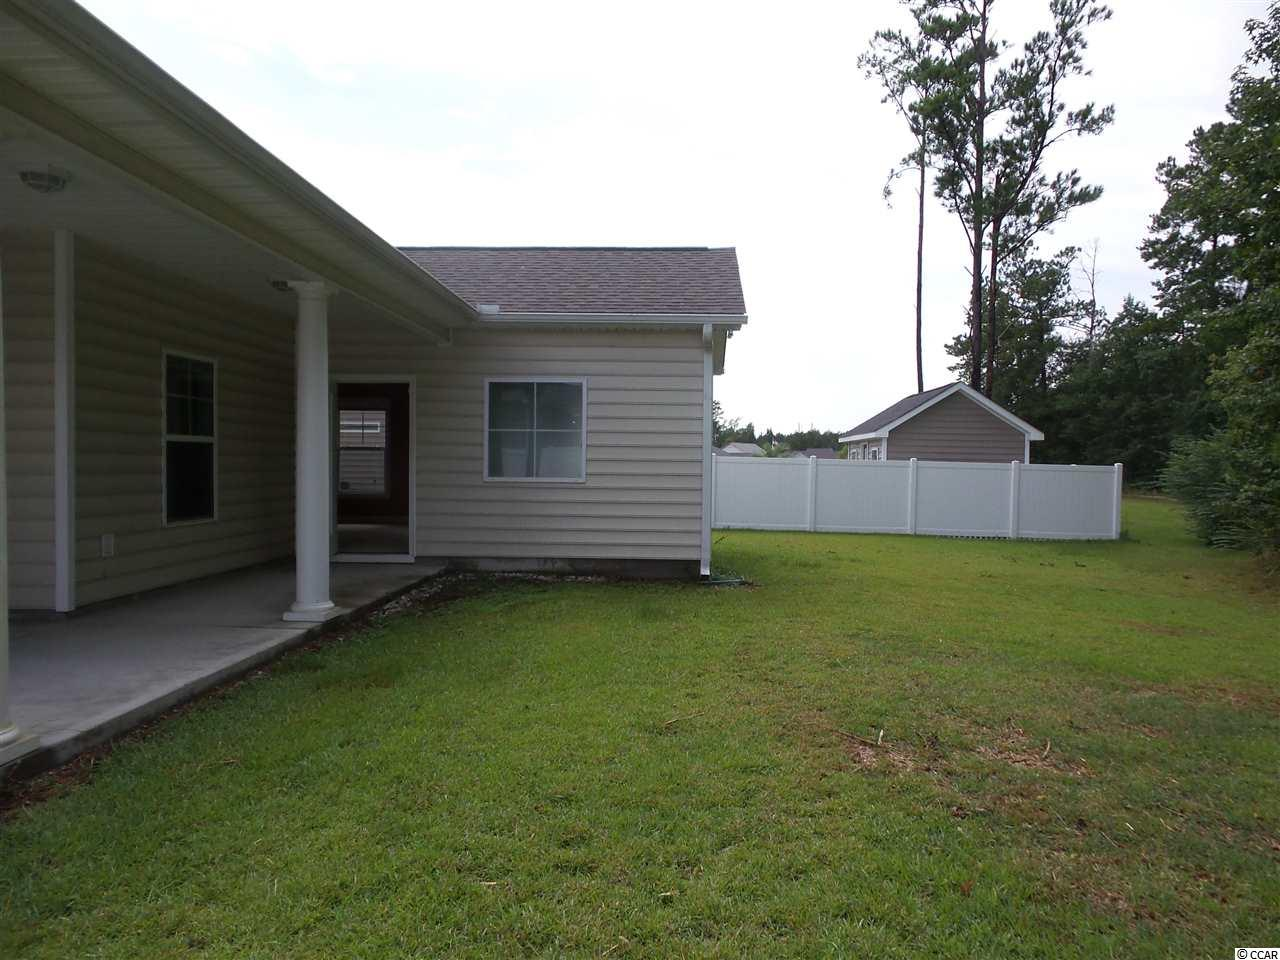 Interested in this Foreclosure-Deed Not Recorded house for $133,375 at  Grier Crossing is currently for sale